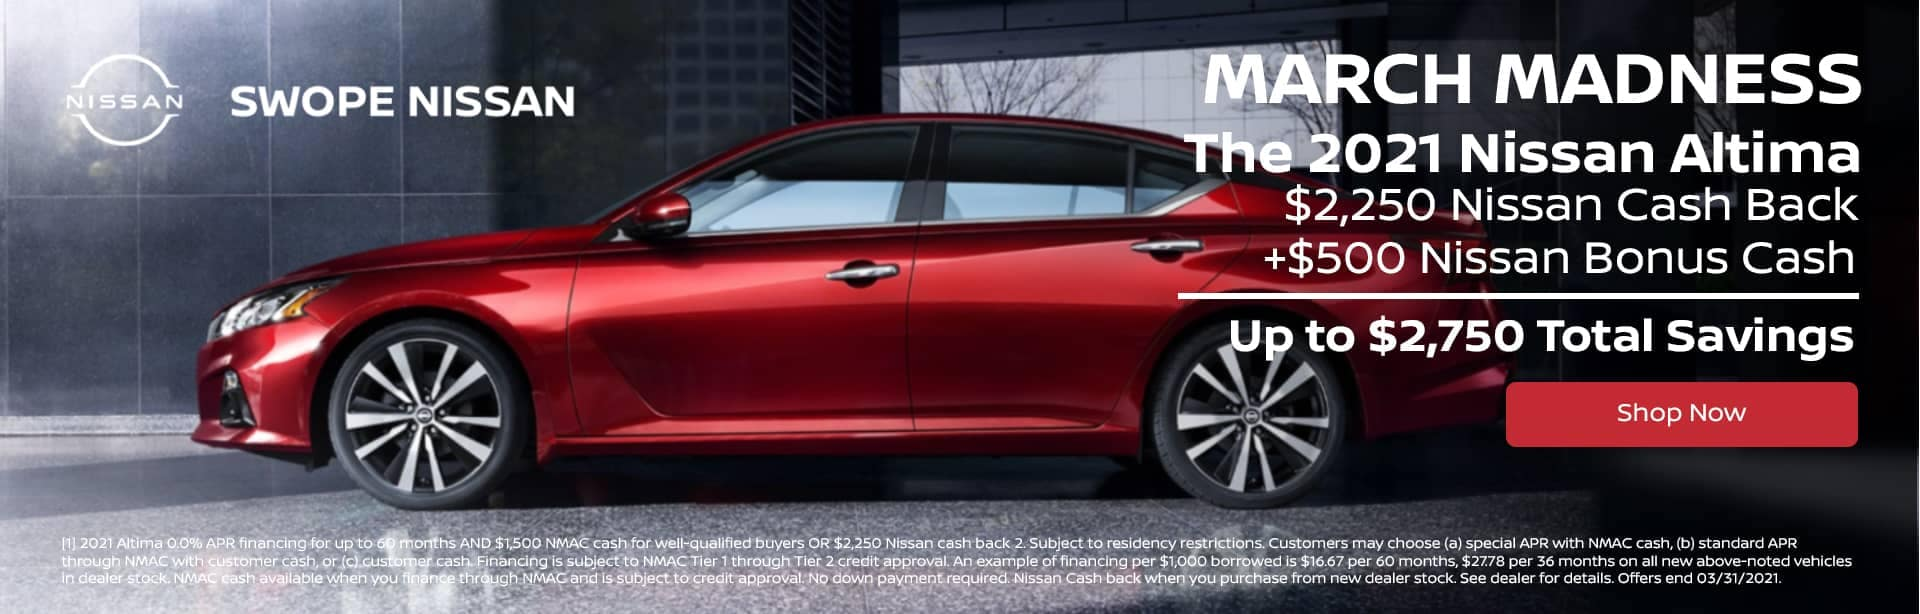 March Madness Deal - The 2021 Nissan Altima